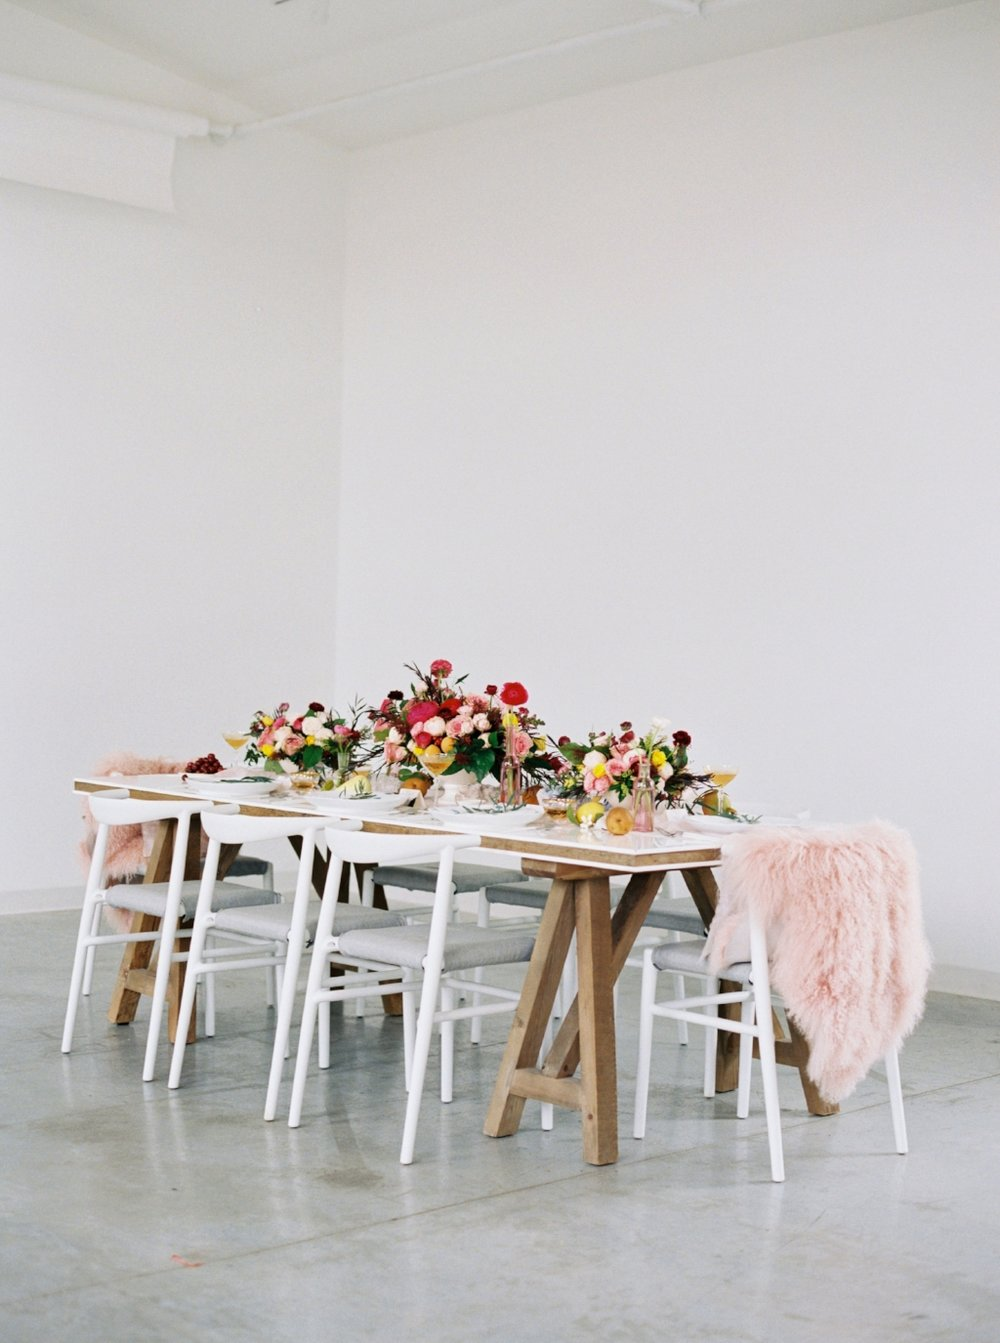 12th-Table-WEDDING-RENTALS-NASHVILLE-Design-Tips-Hosting-ENTERTAINING-Series-HannahCrowell-HowIHost-Photograph #